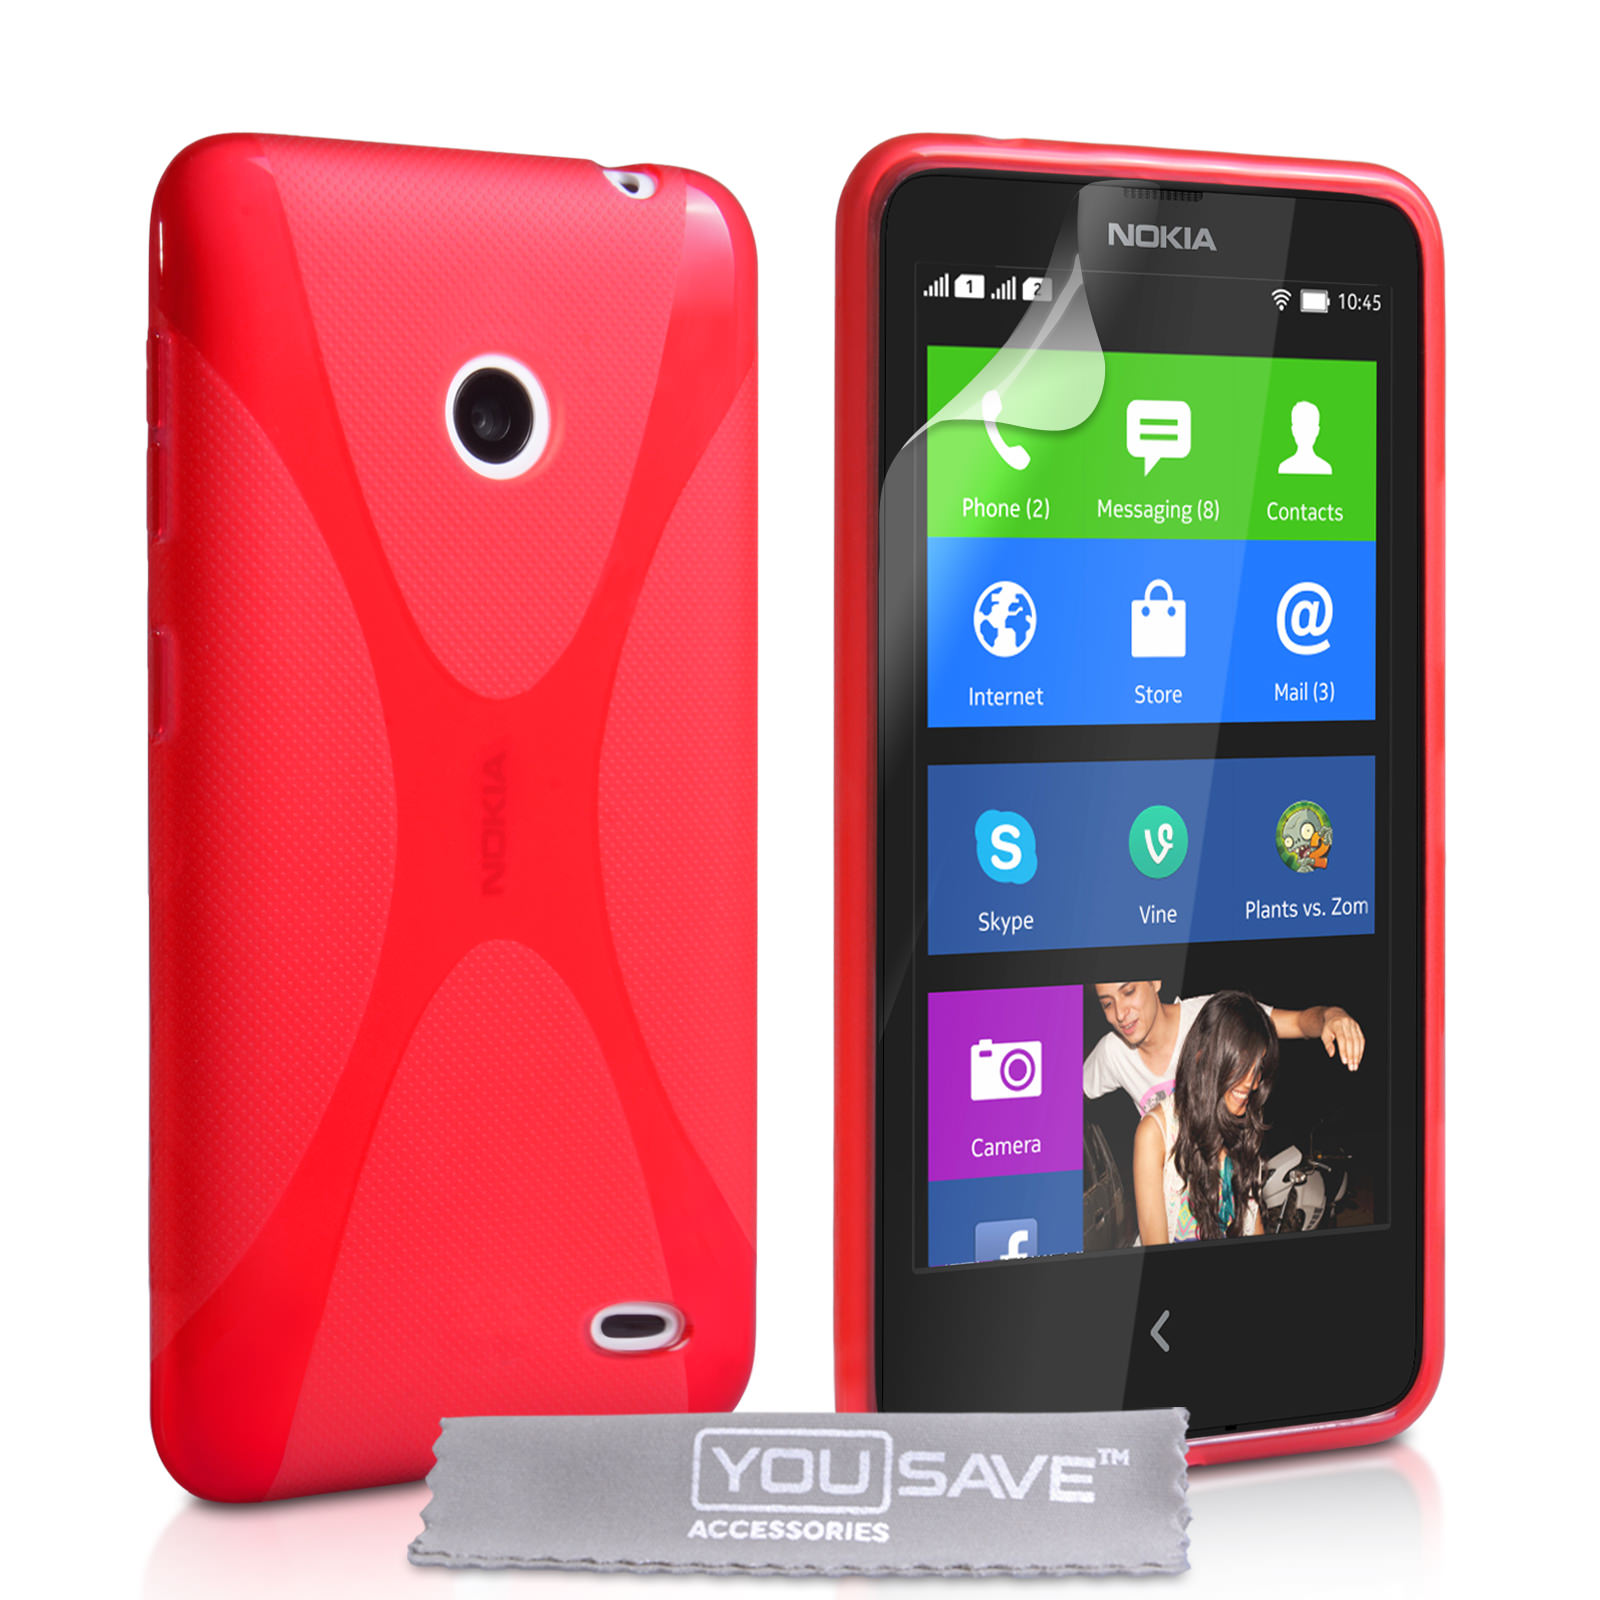 YouSave Accessories Nokia X Silicone Gel X-Line Case - Red